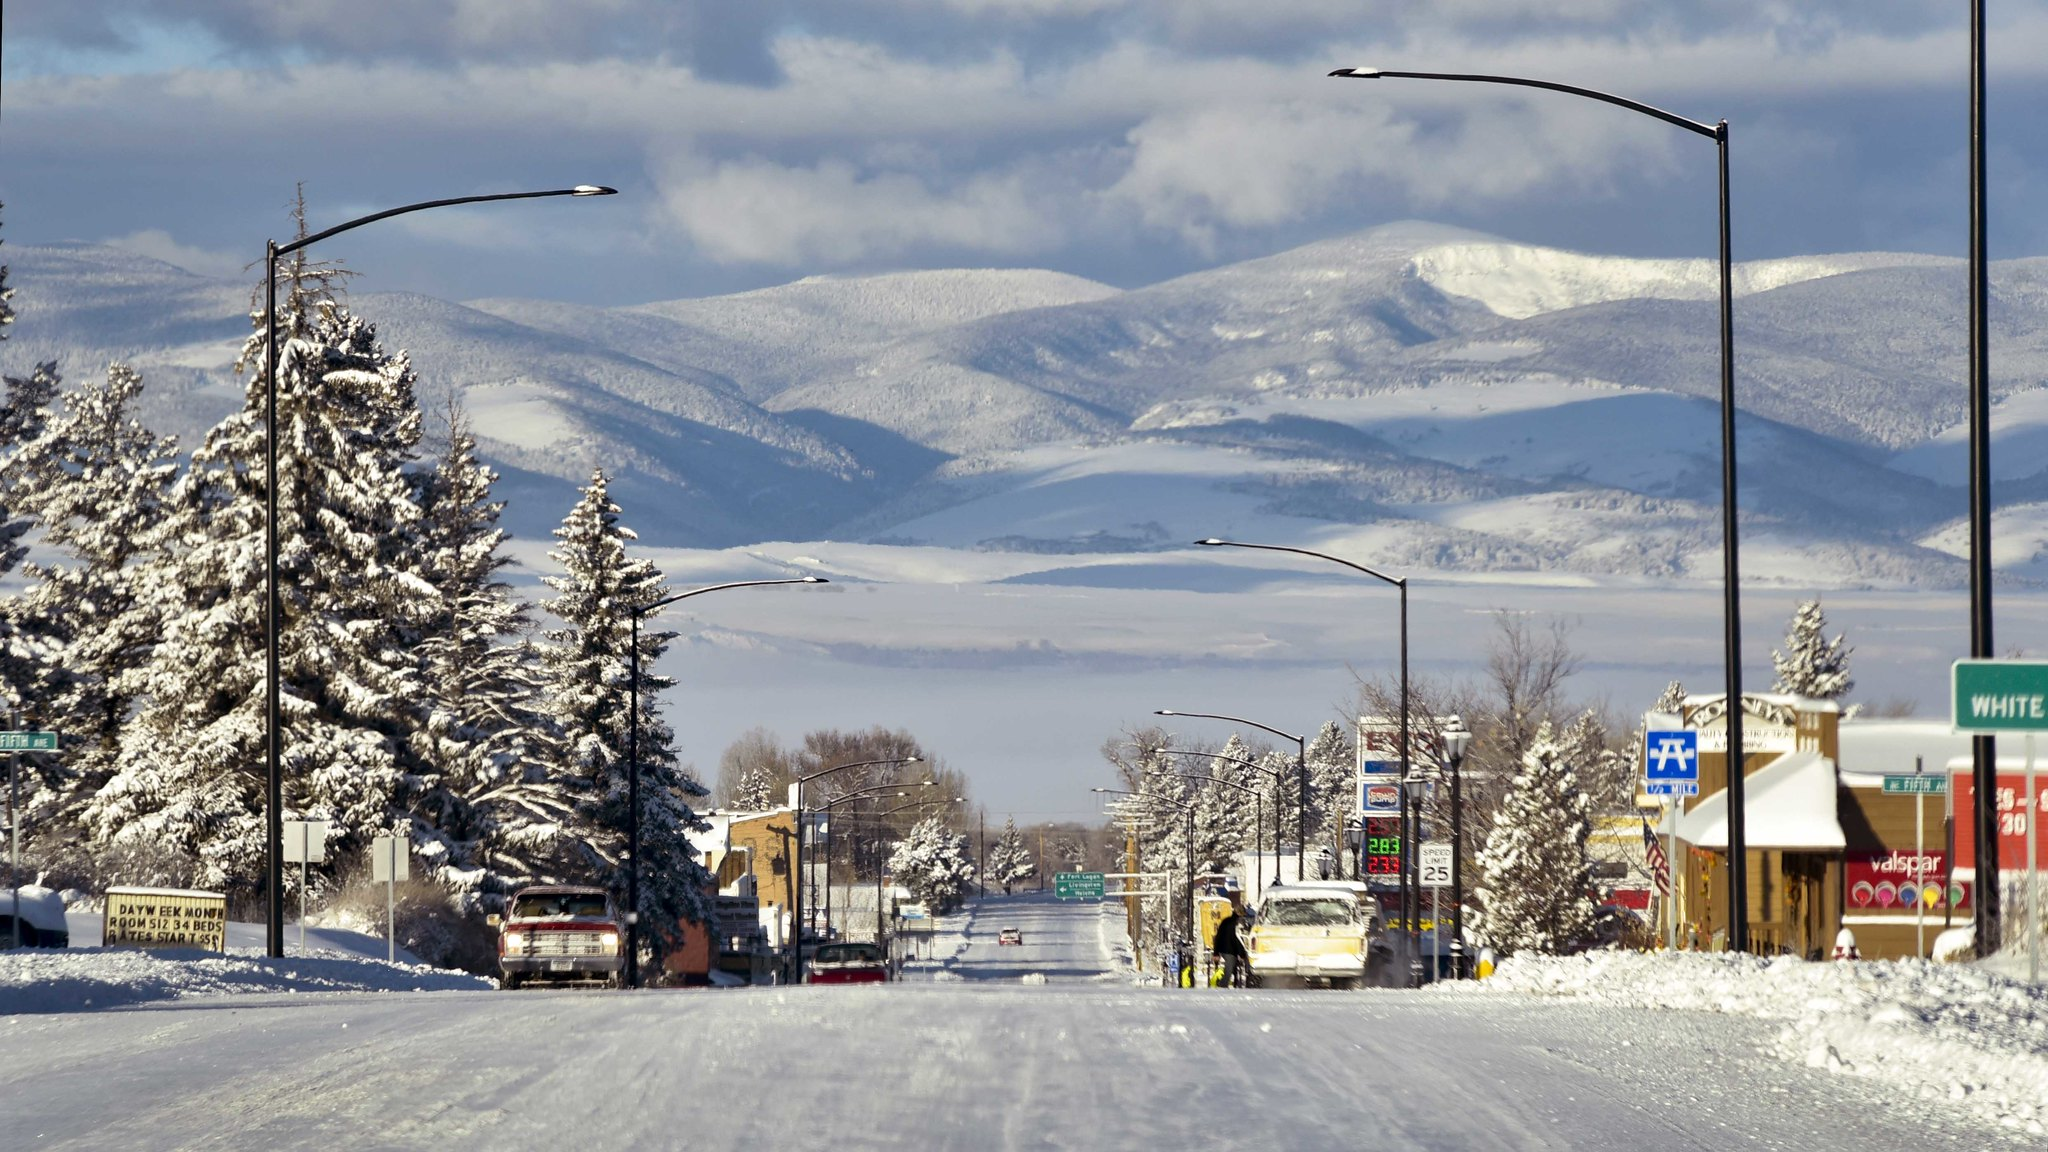 Find everything you need to have a great time while in the area right in White Sulphur Springs, Meagher County Montana.